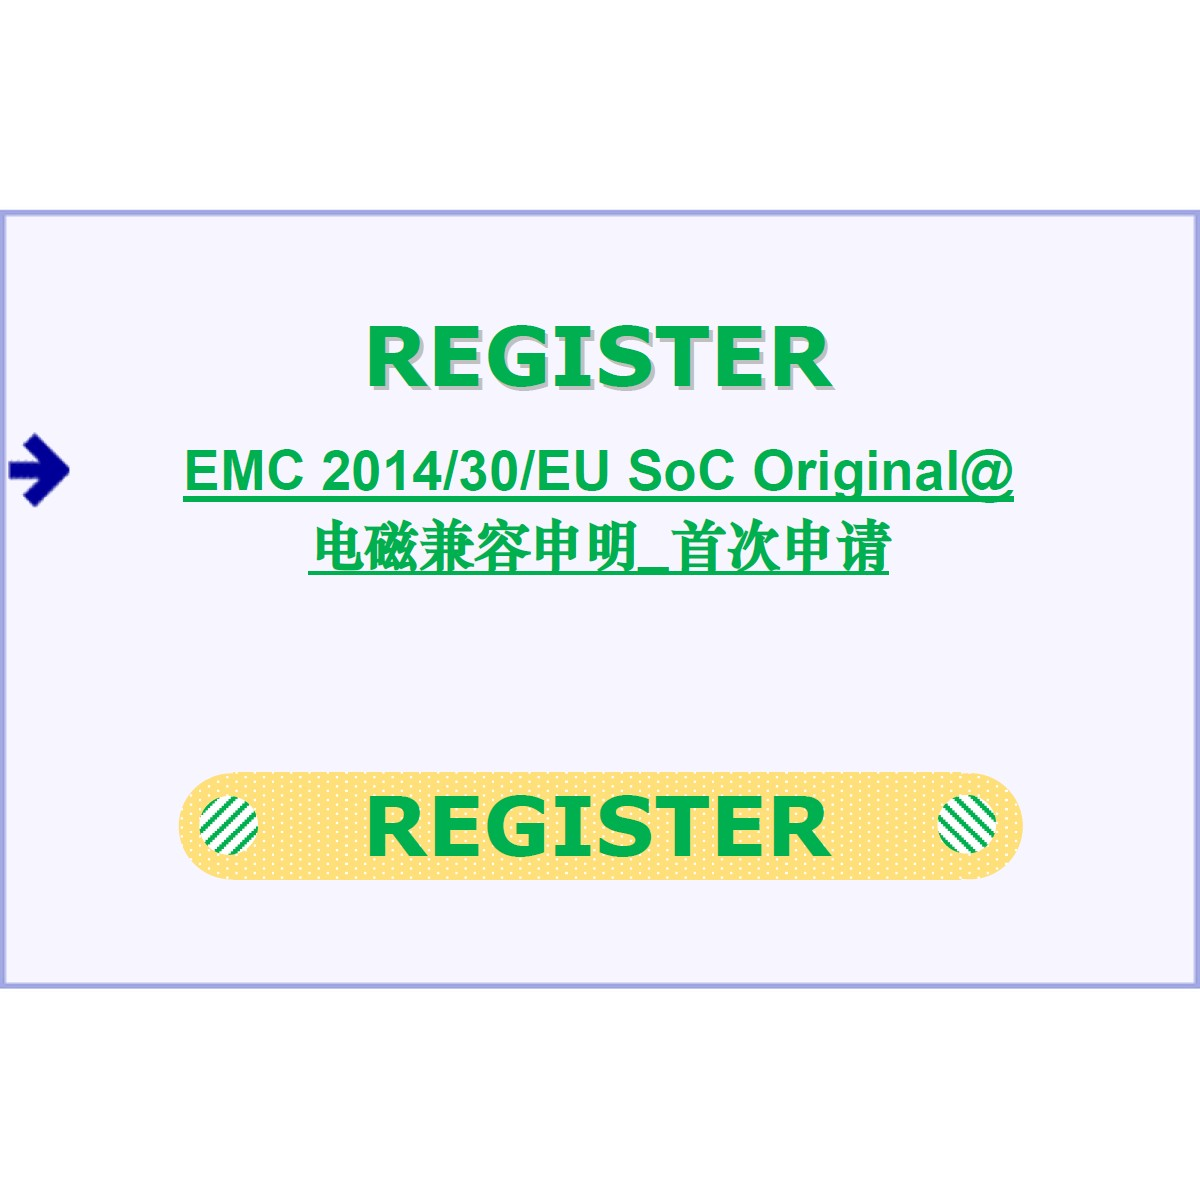 CE EMC Device Type_Residential_Commercial and Light-industrial Environments->Consumer Device@住宅&商业和轻工业环境->家用设备